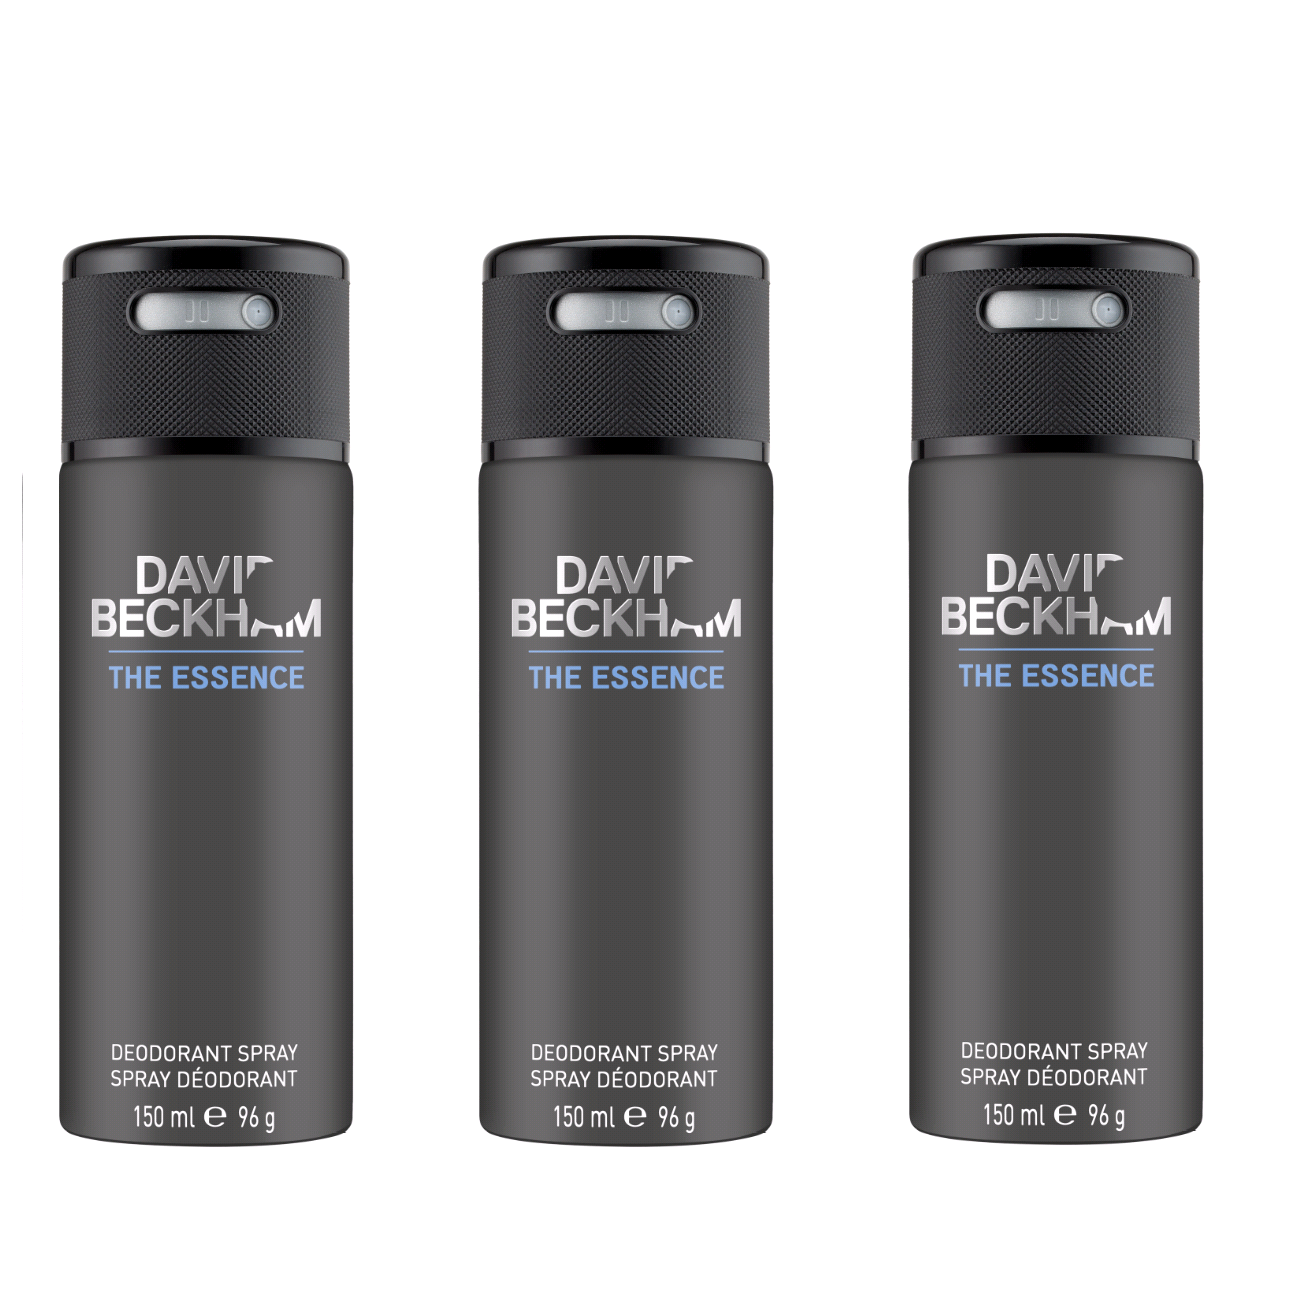 David Beckham - 3x The Essence Deodorant Spray 150 ml